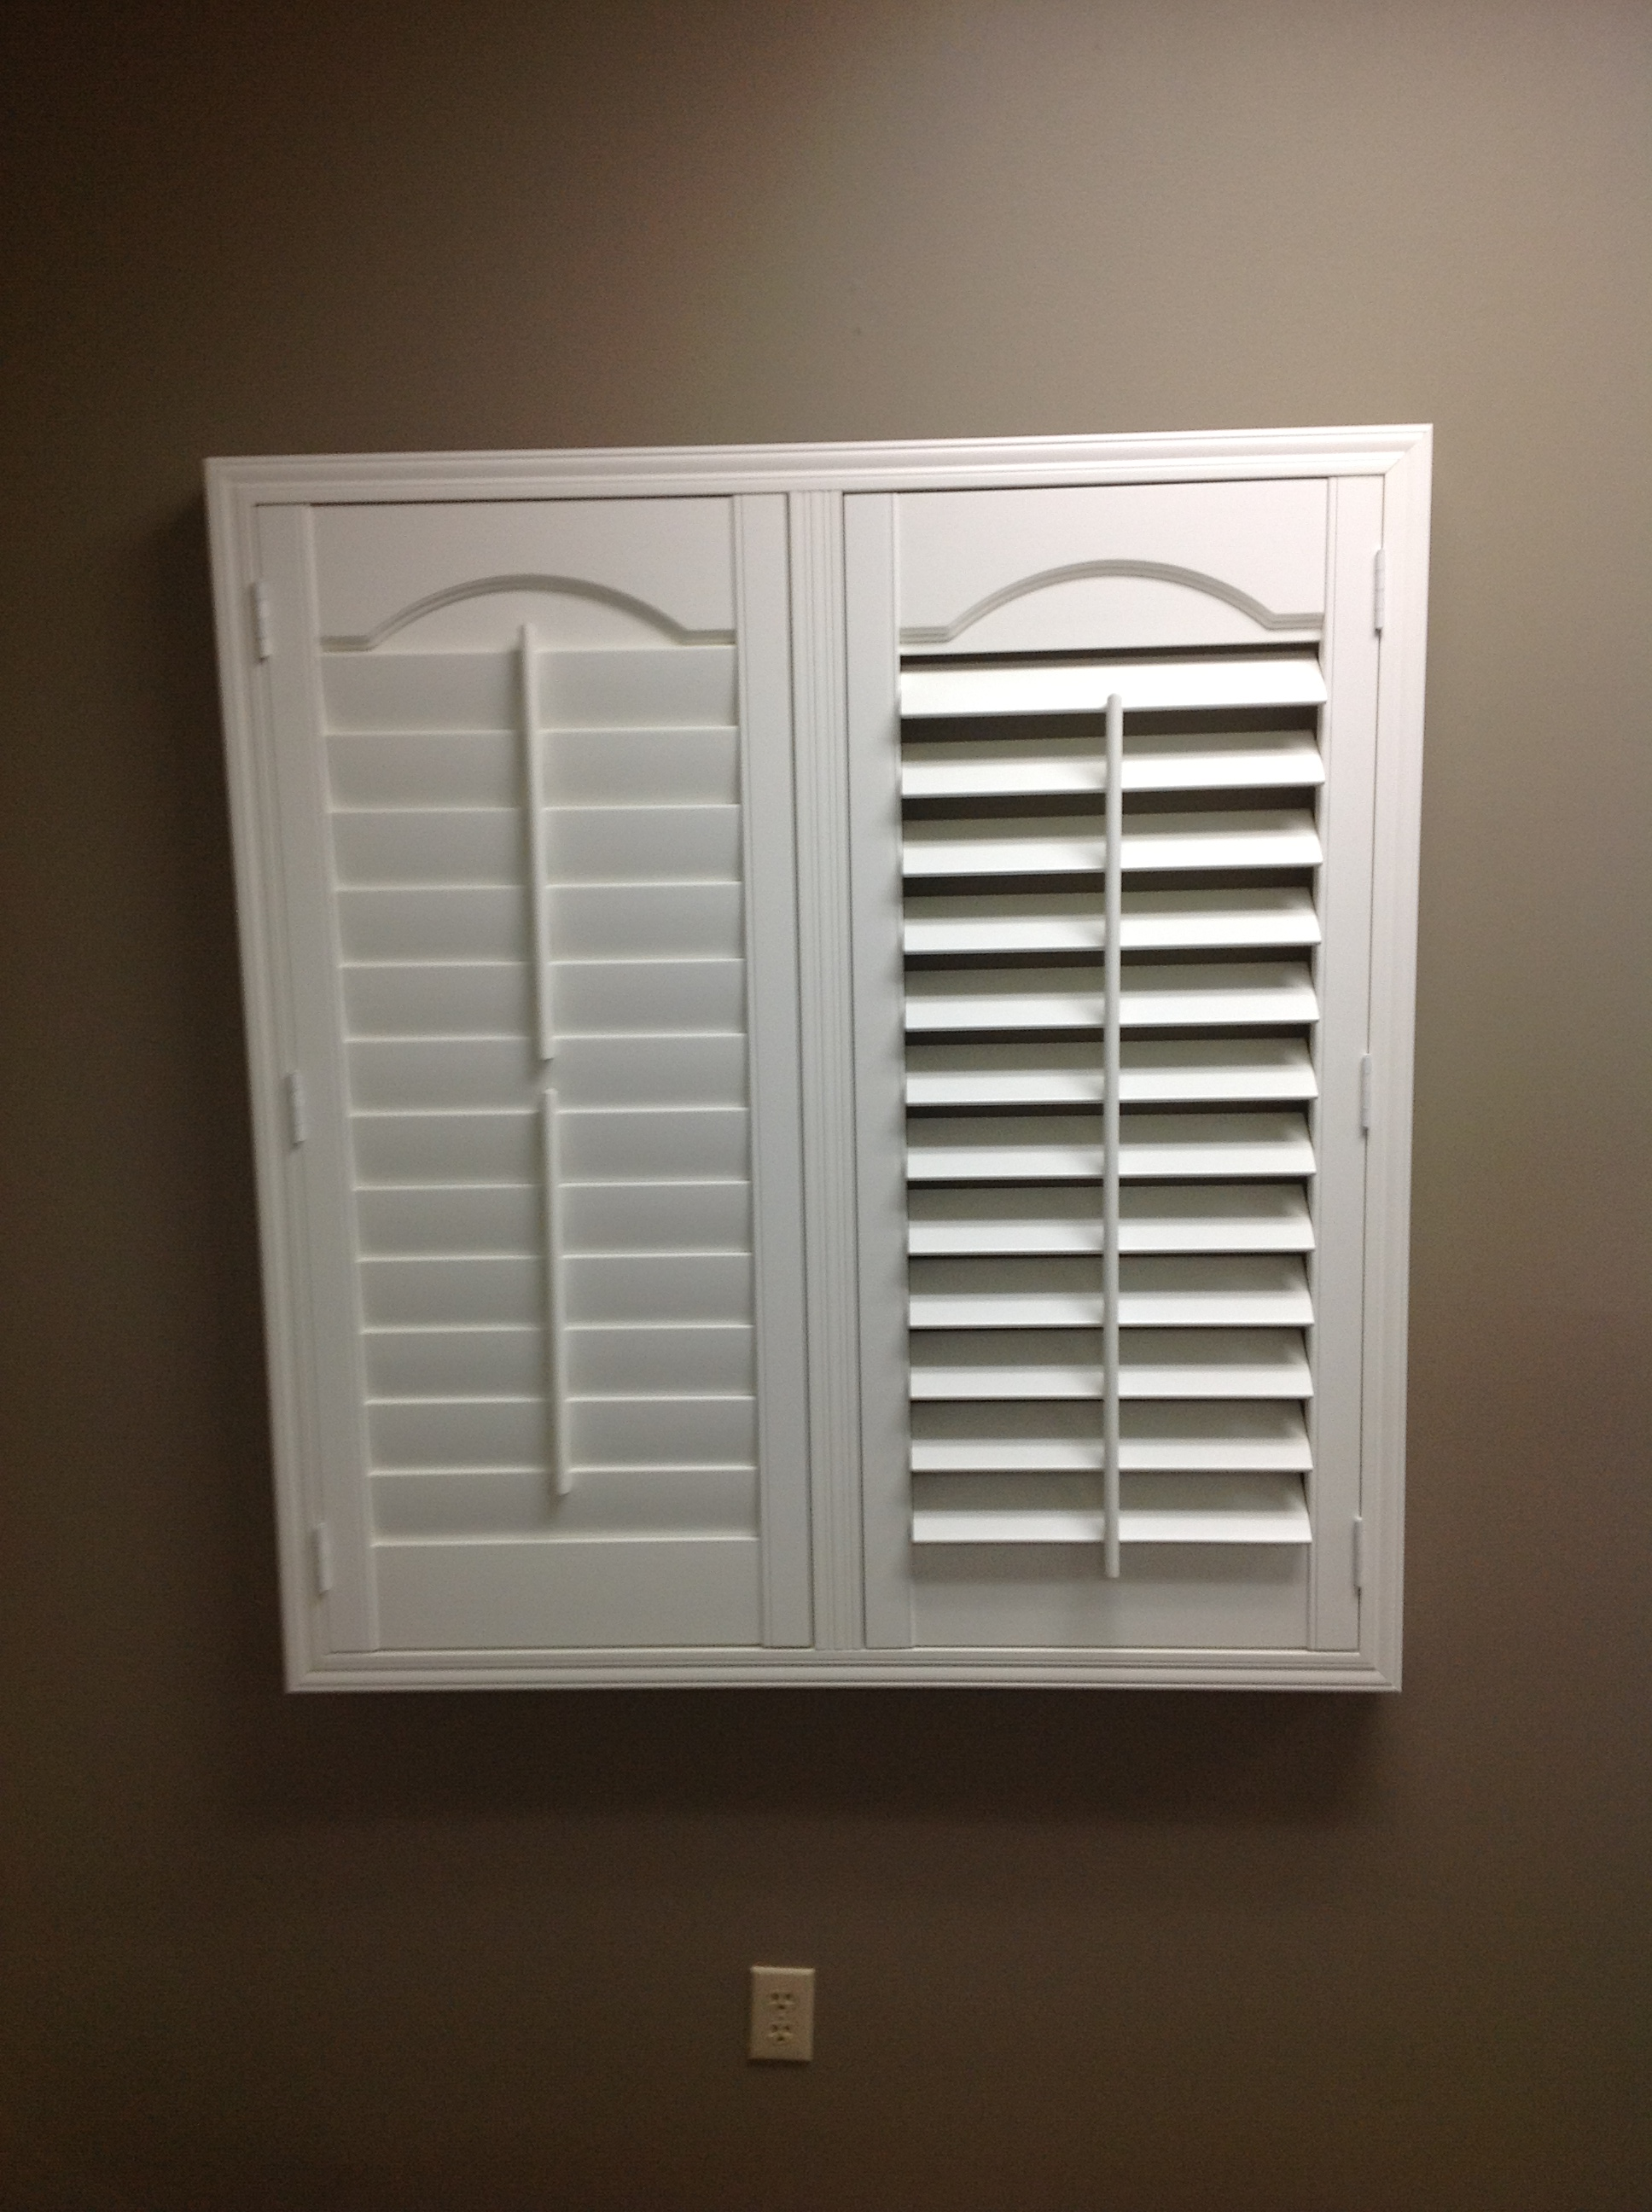 Call to schedule your free in-home estimate. Offers blinds, shades, shutters, window shutters, wooden blinds, home improvements, plantation shutters, and mini, faux wood, vertical, and wood blinds. Columbia window blinds, -shades, shutter, window treatments and .